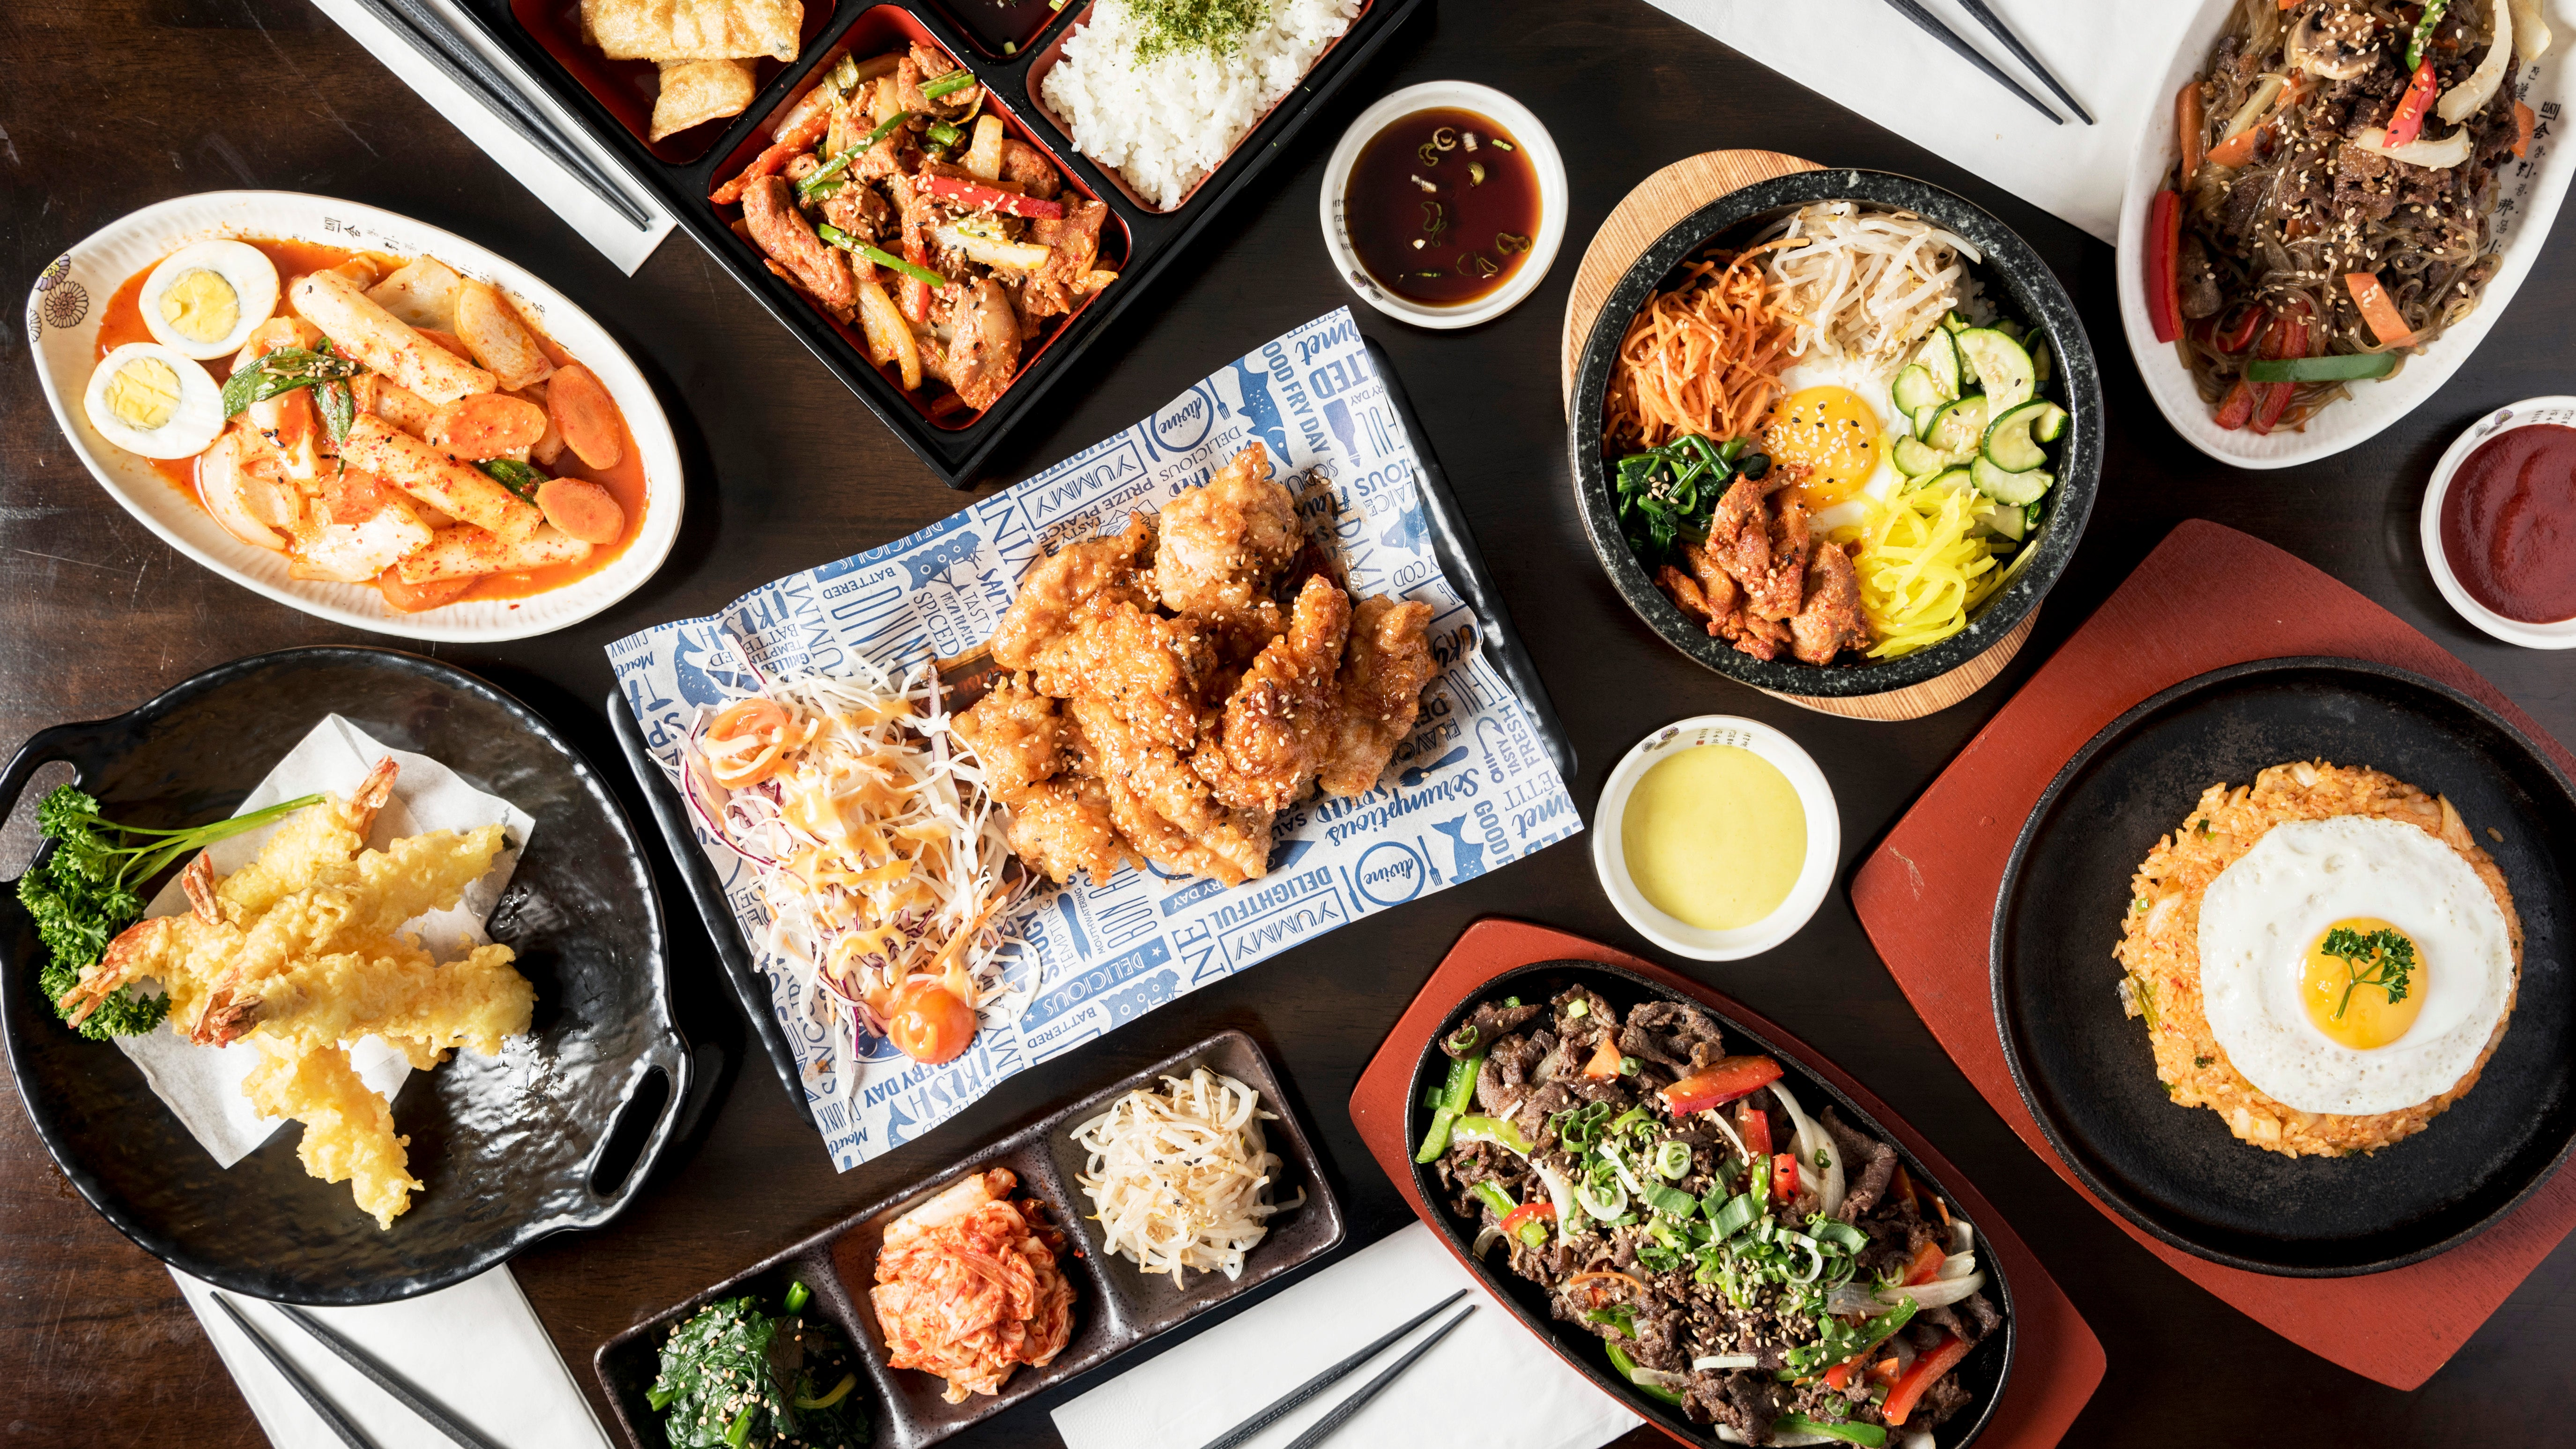 Daebak Korean Restaurant delivery from Vauxhall - Order with Deliveroo